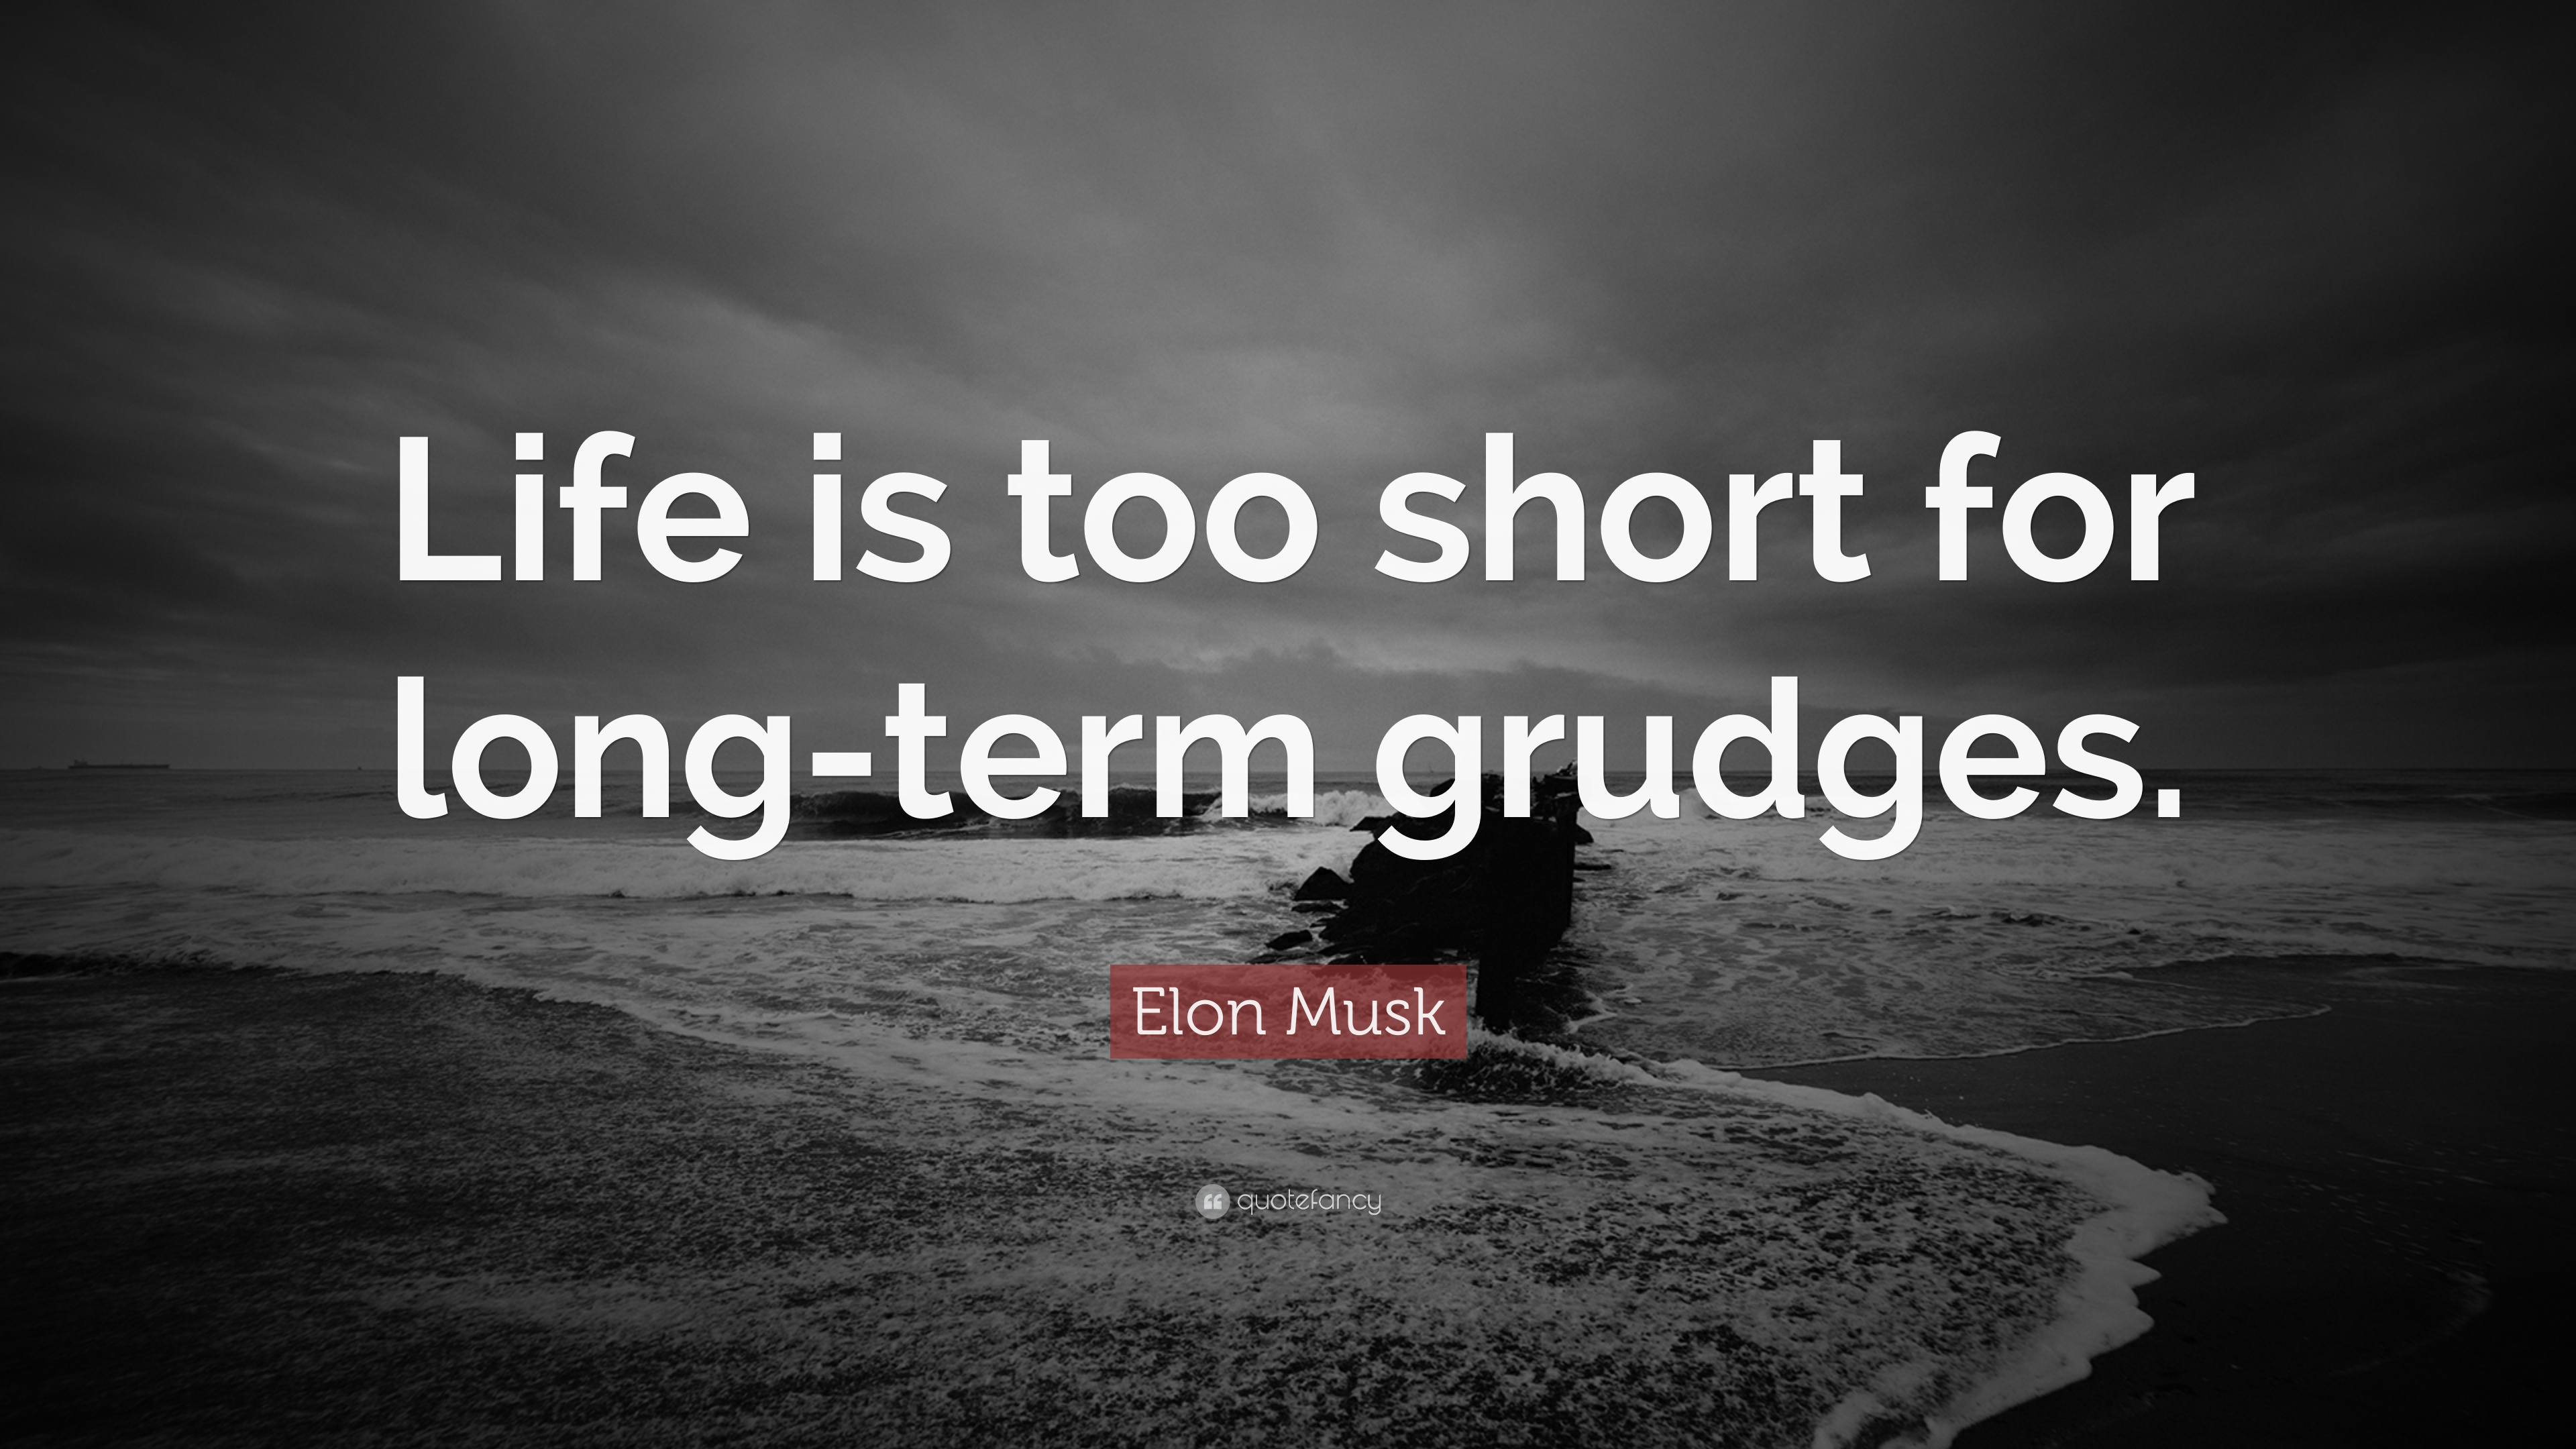 """Elon Musk Quote: """"Life Is Too Short For Long-term Grudges"""